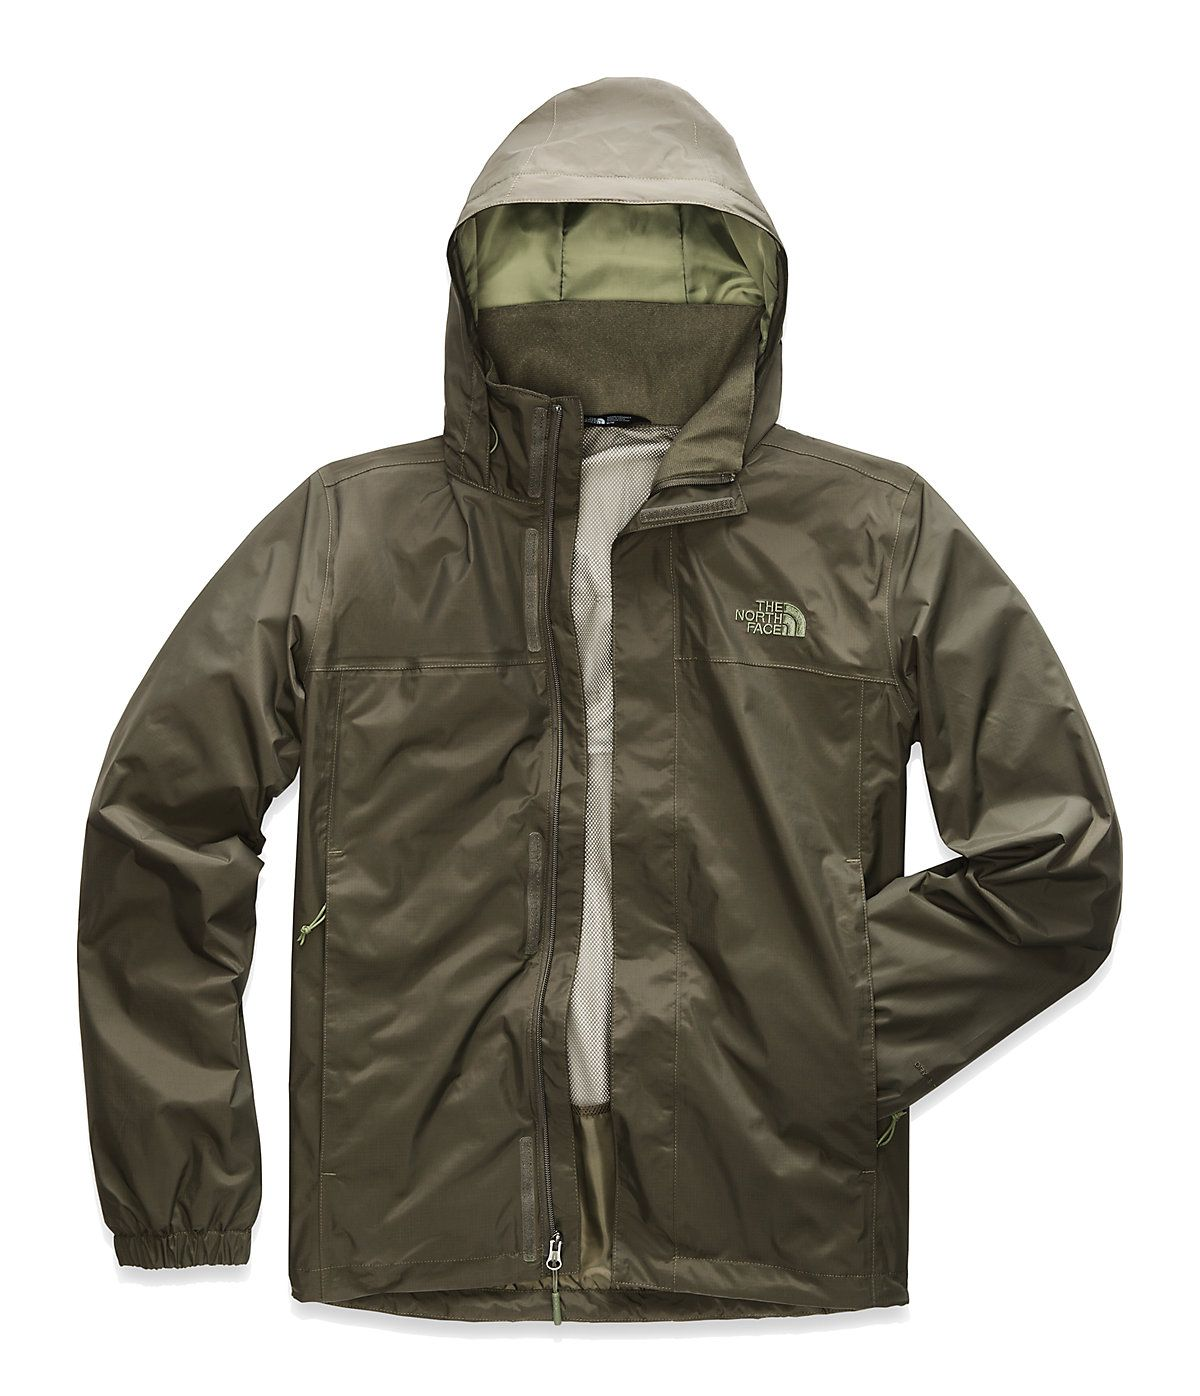 Men S Resolve 2 Jacket Free Shipping The North Face In 2021 North Face Jacket North Face Mens Mens Jackets [ 1396 x 1200 Pixel ]